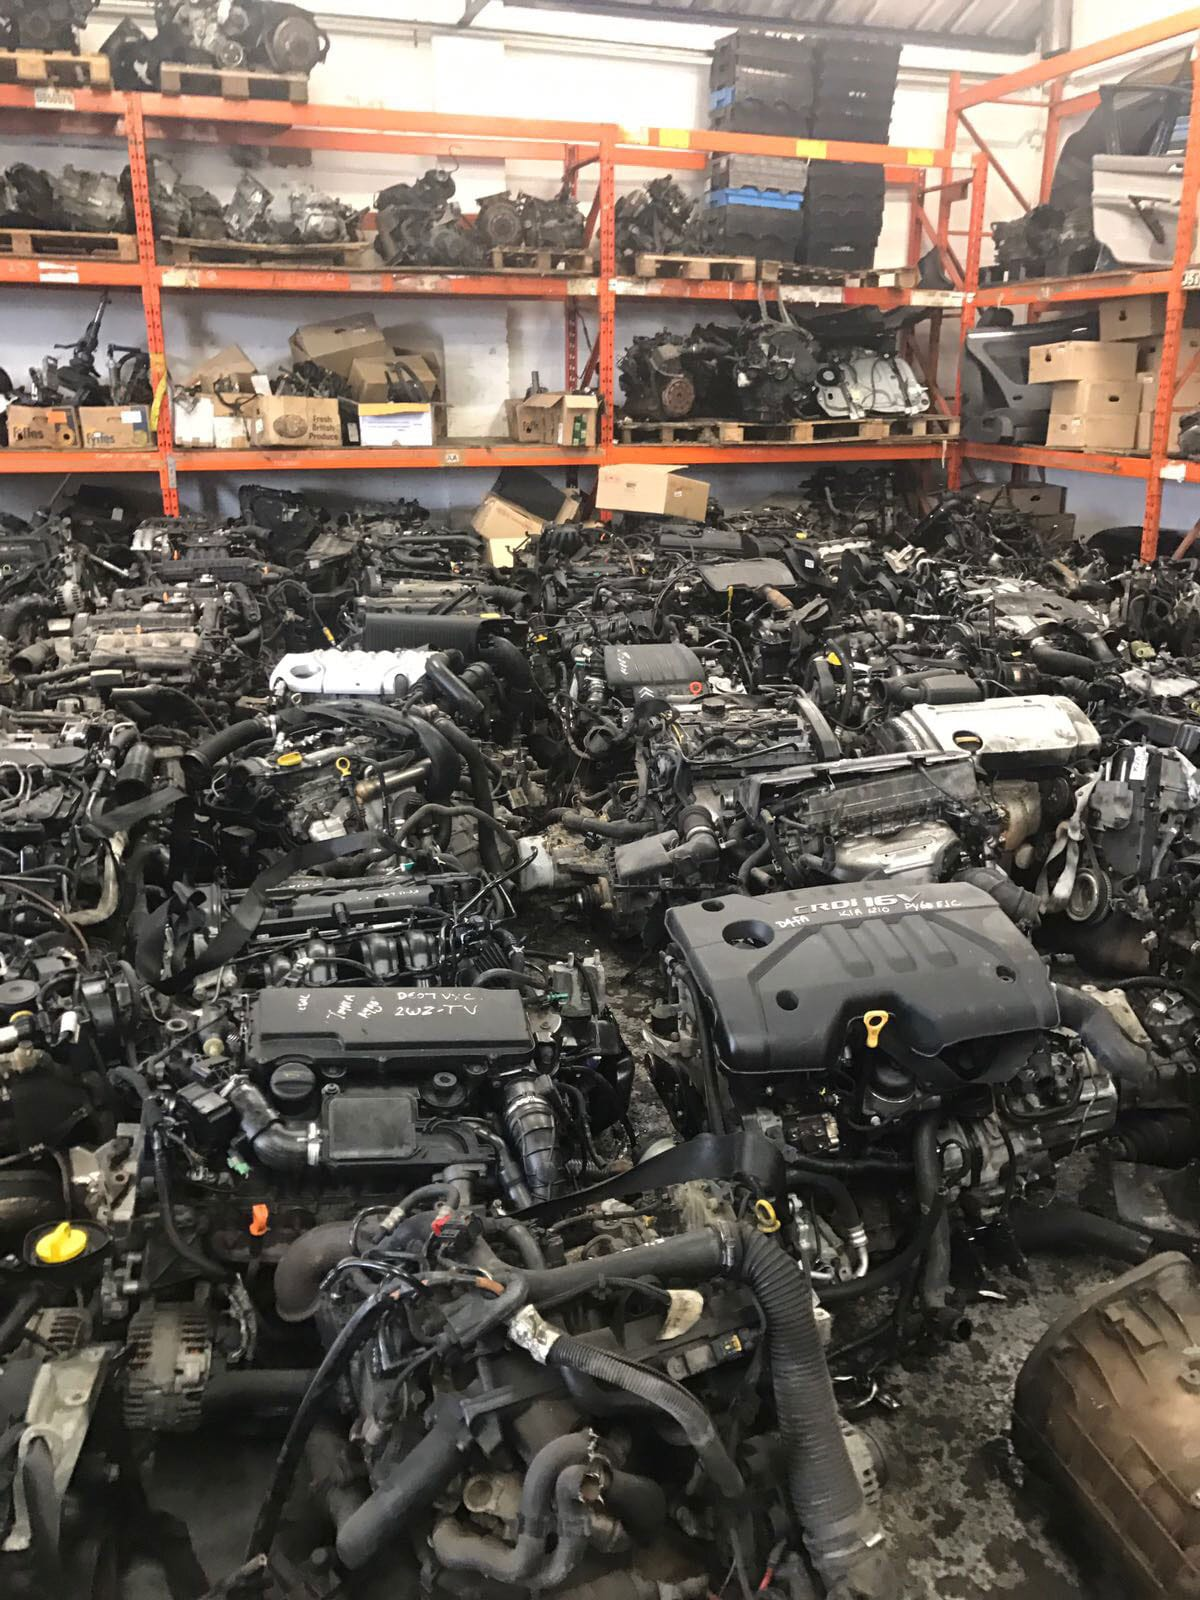 Room full of salvaged engines